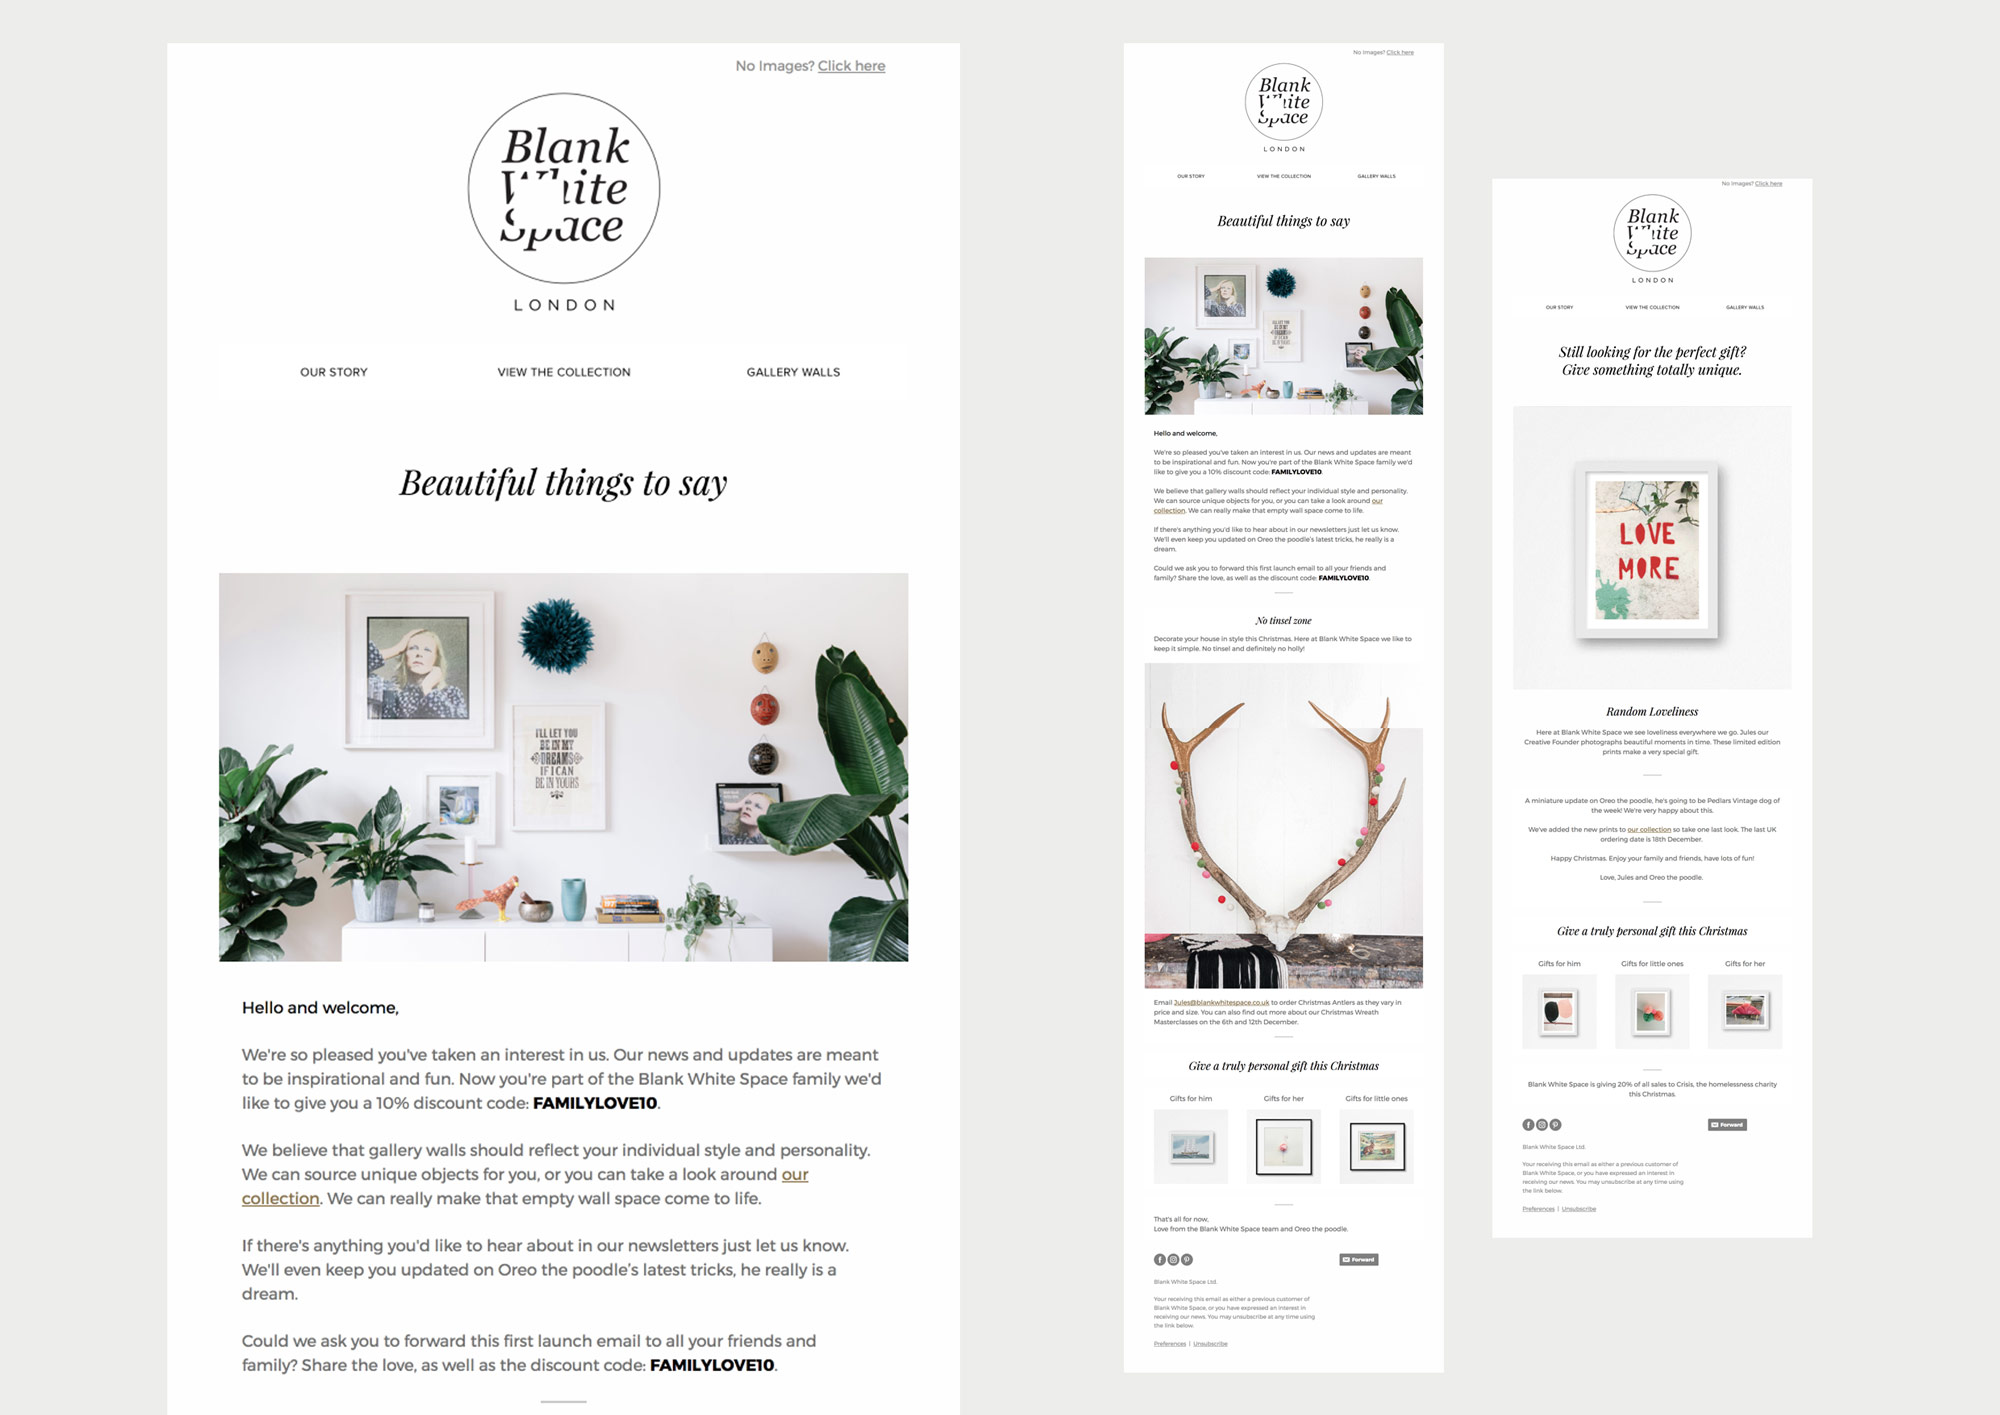 Blank White Space email marketing